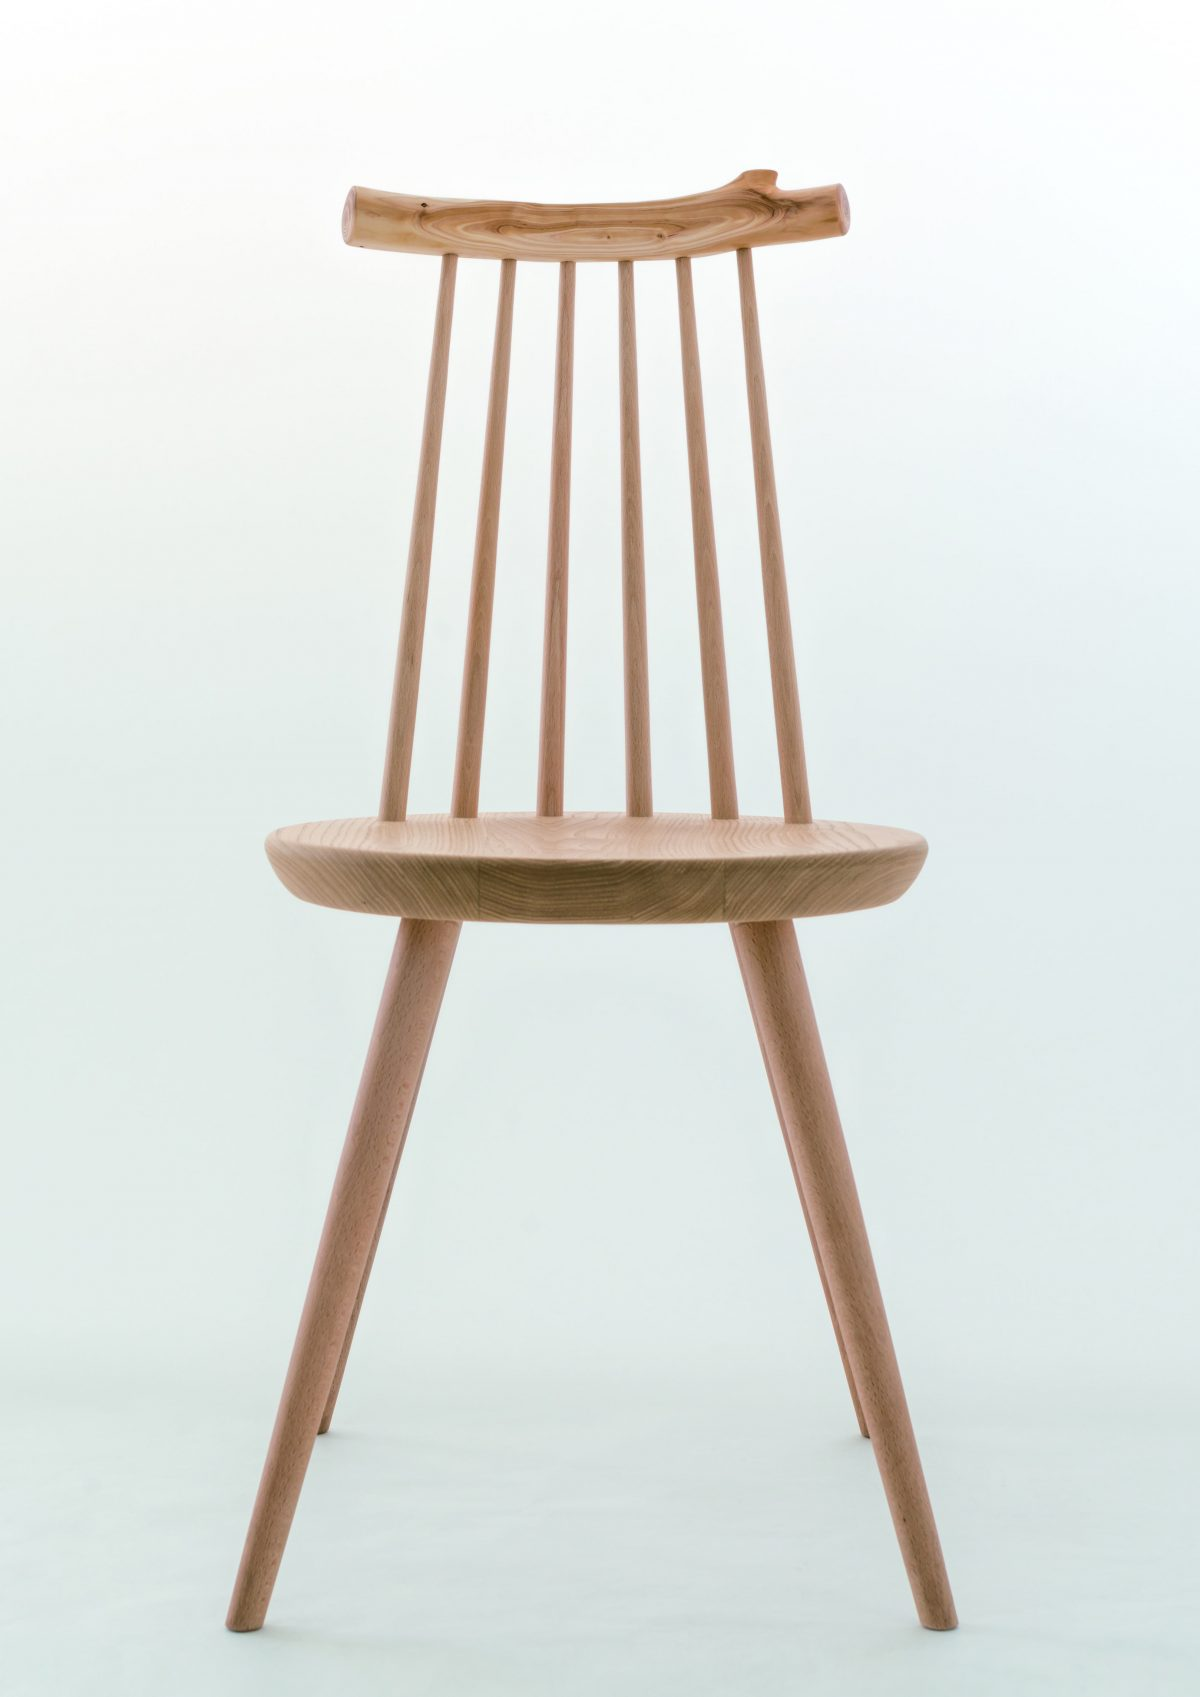 The Kinoe chair, designed by Ibuki Kaiyama